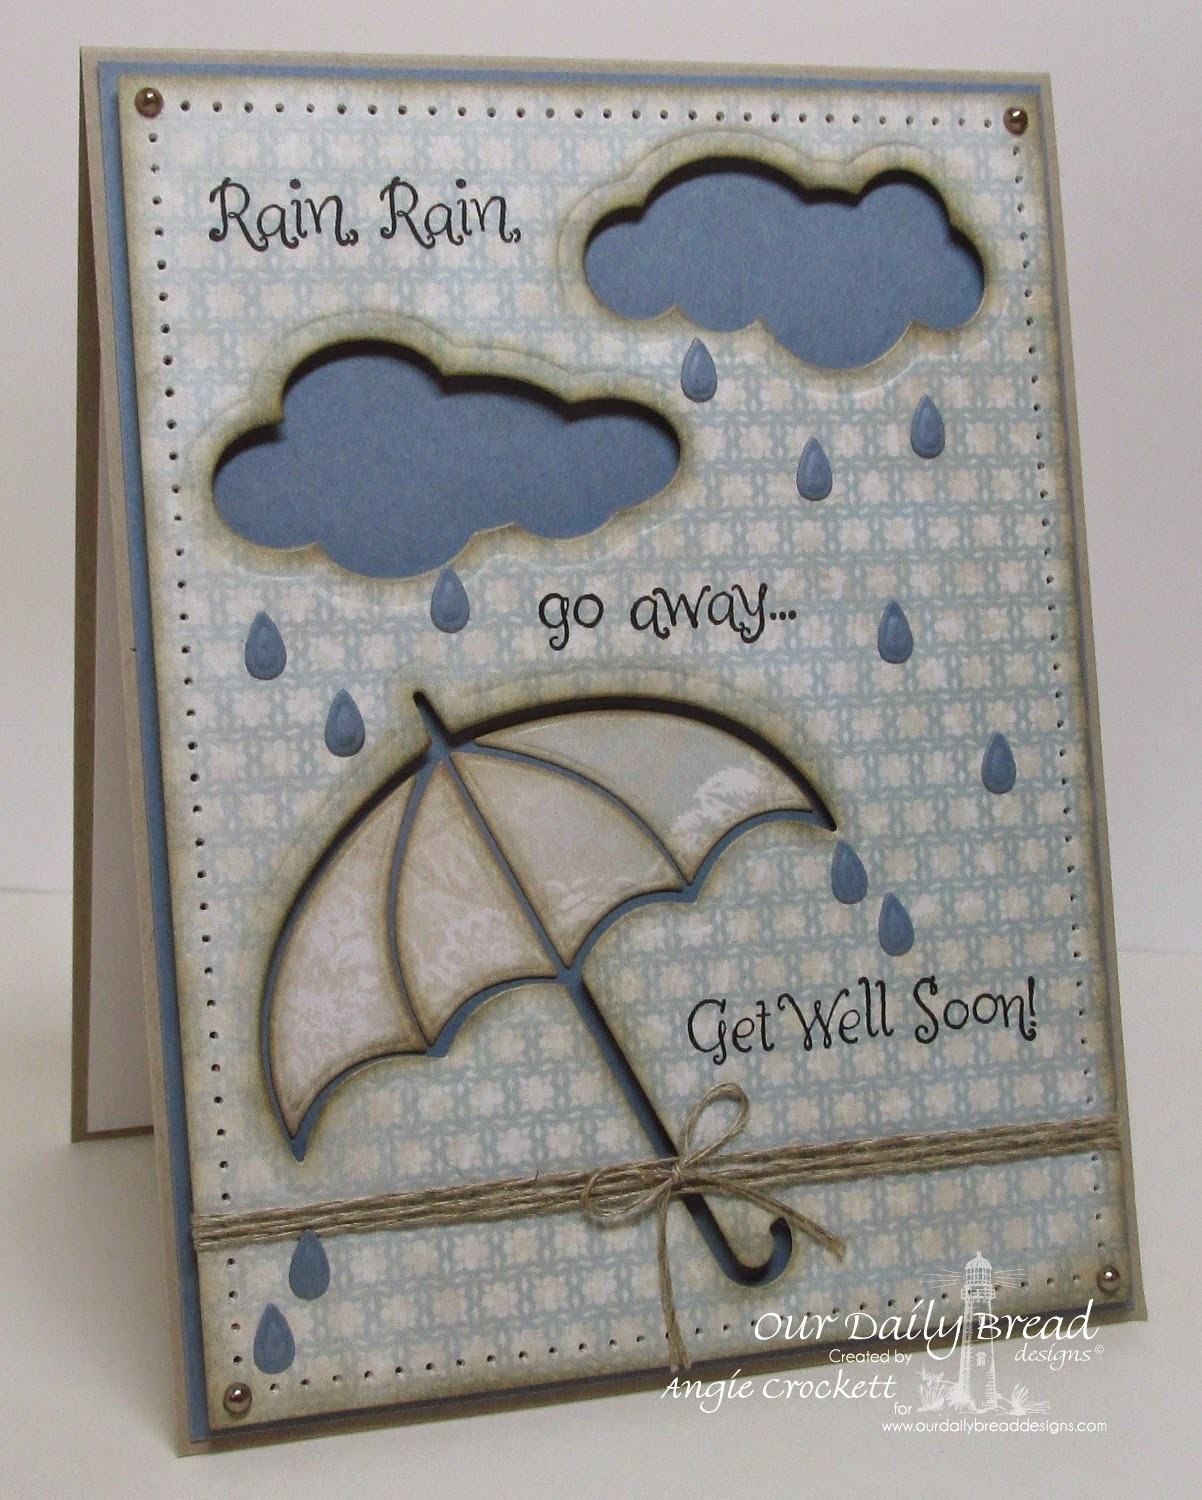 ODBD Shabby Rose Paper Collection, ODBD Shower of Blessings, ODBD Custom Umbrellas Dies, ODBD Custom Clouds and Raindrops Dies, Card Designer Angie Crockett